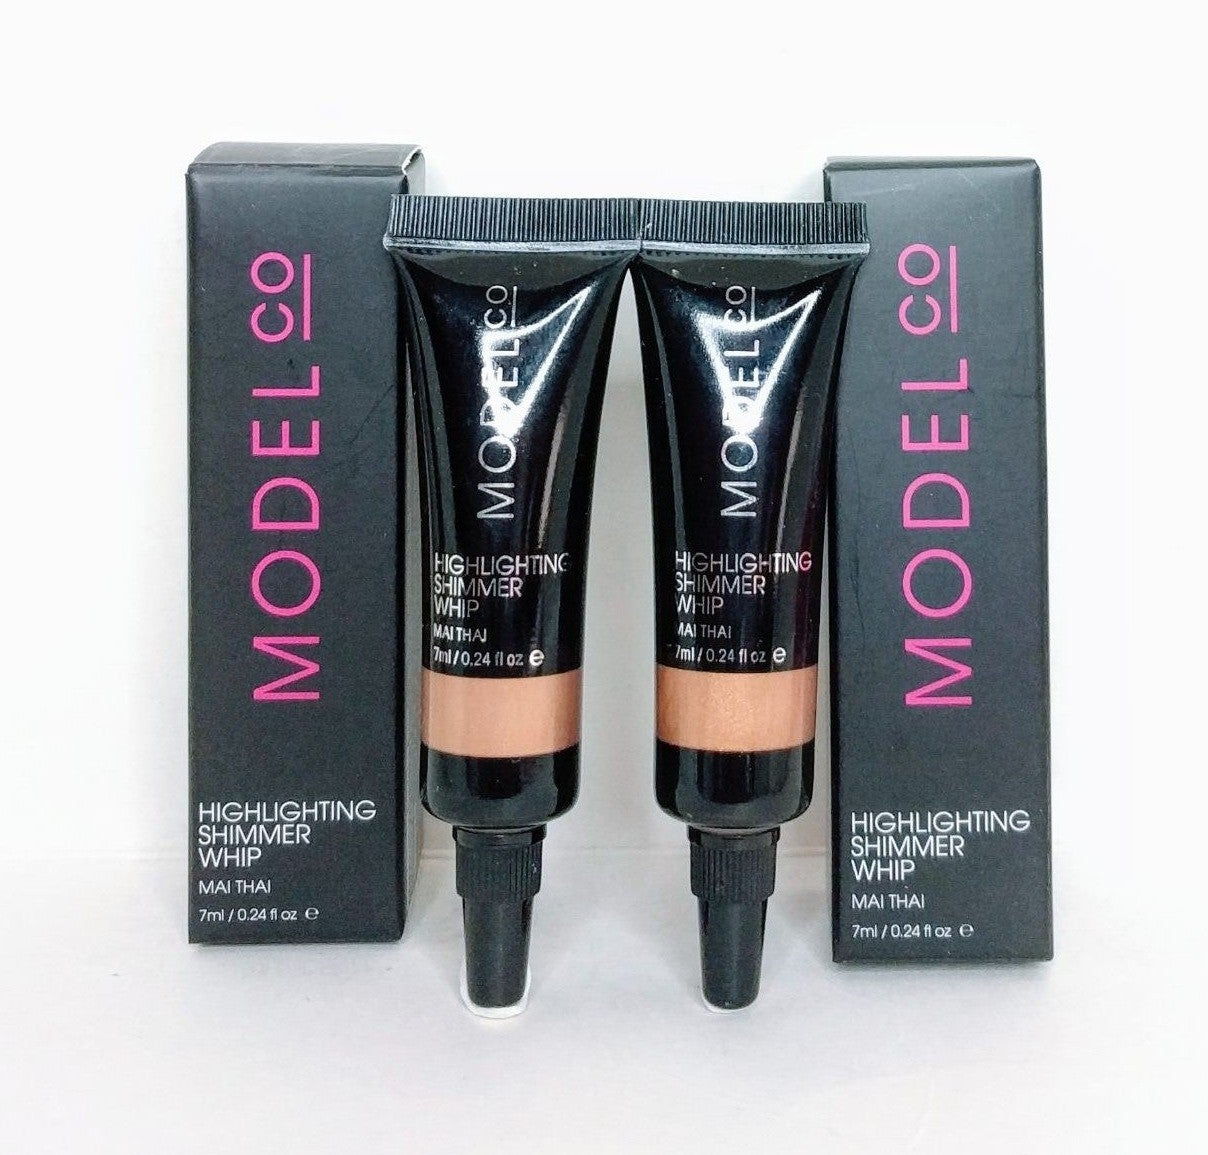 Model CO Highlighting Shimmer Whip Duo